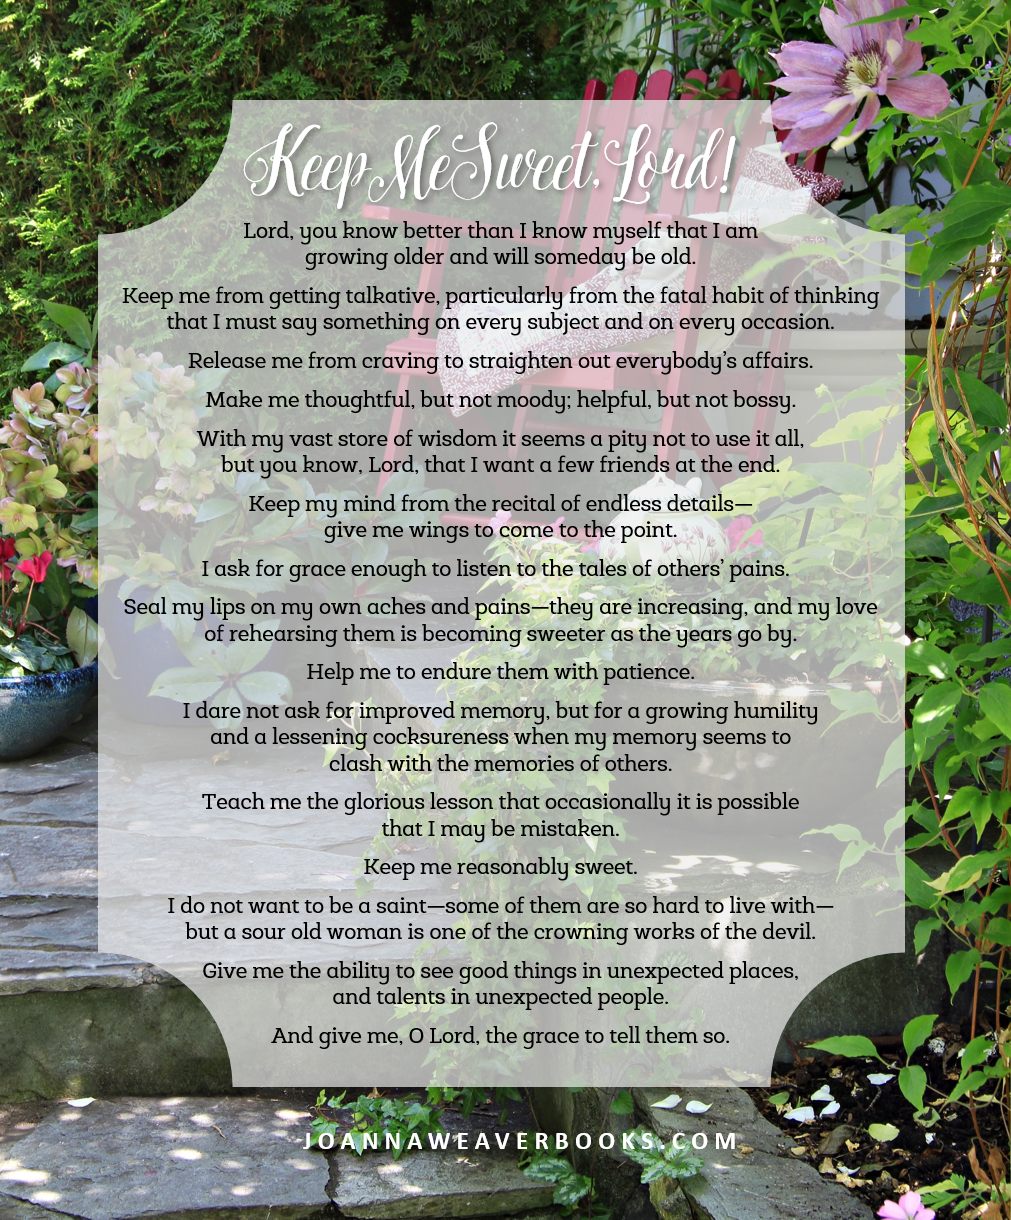 A powerful prayer for every woman....Keep me sweet, Lord! From Joanna Weaver's book, Having a Mary Spirit. Learn more at www.JoannaWeaverBooks.com